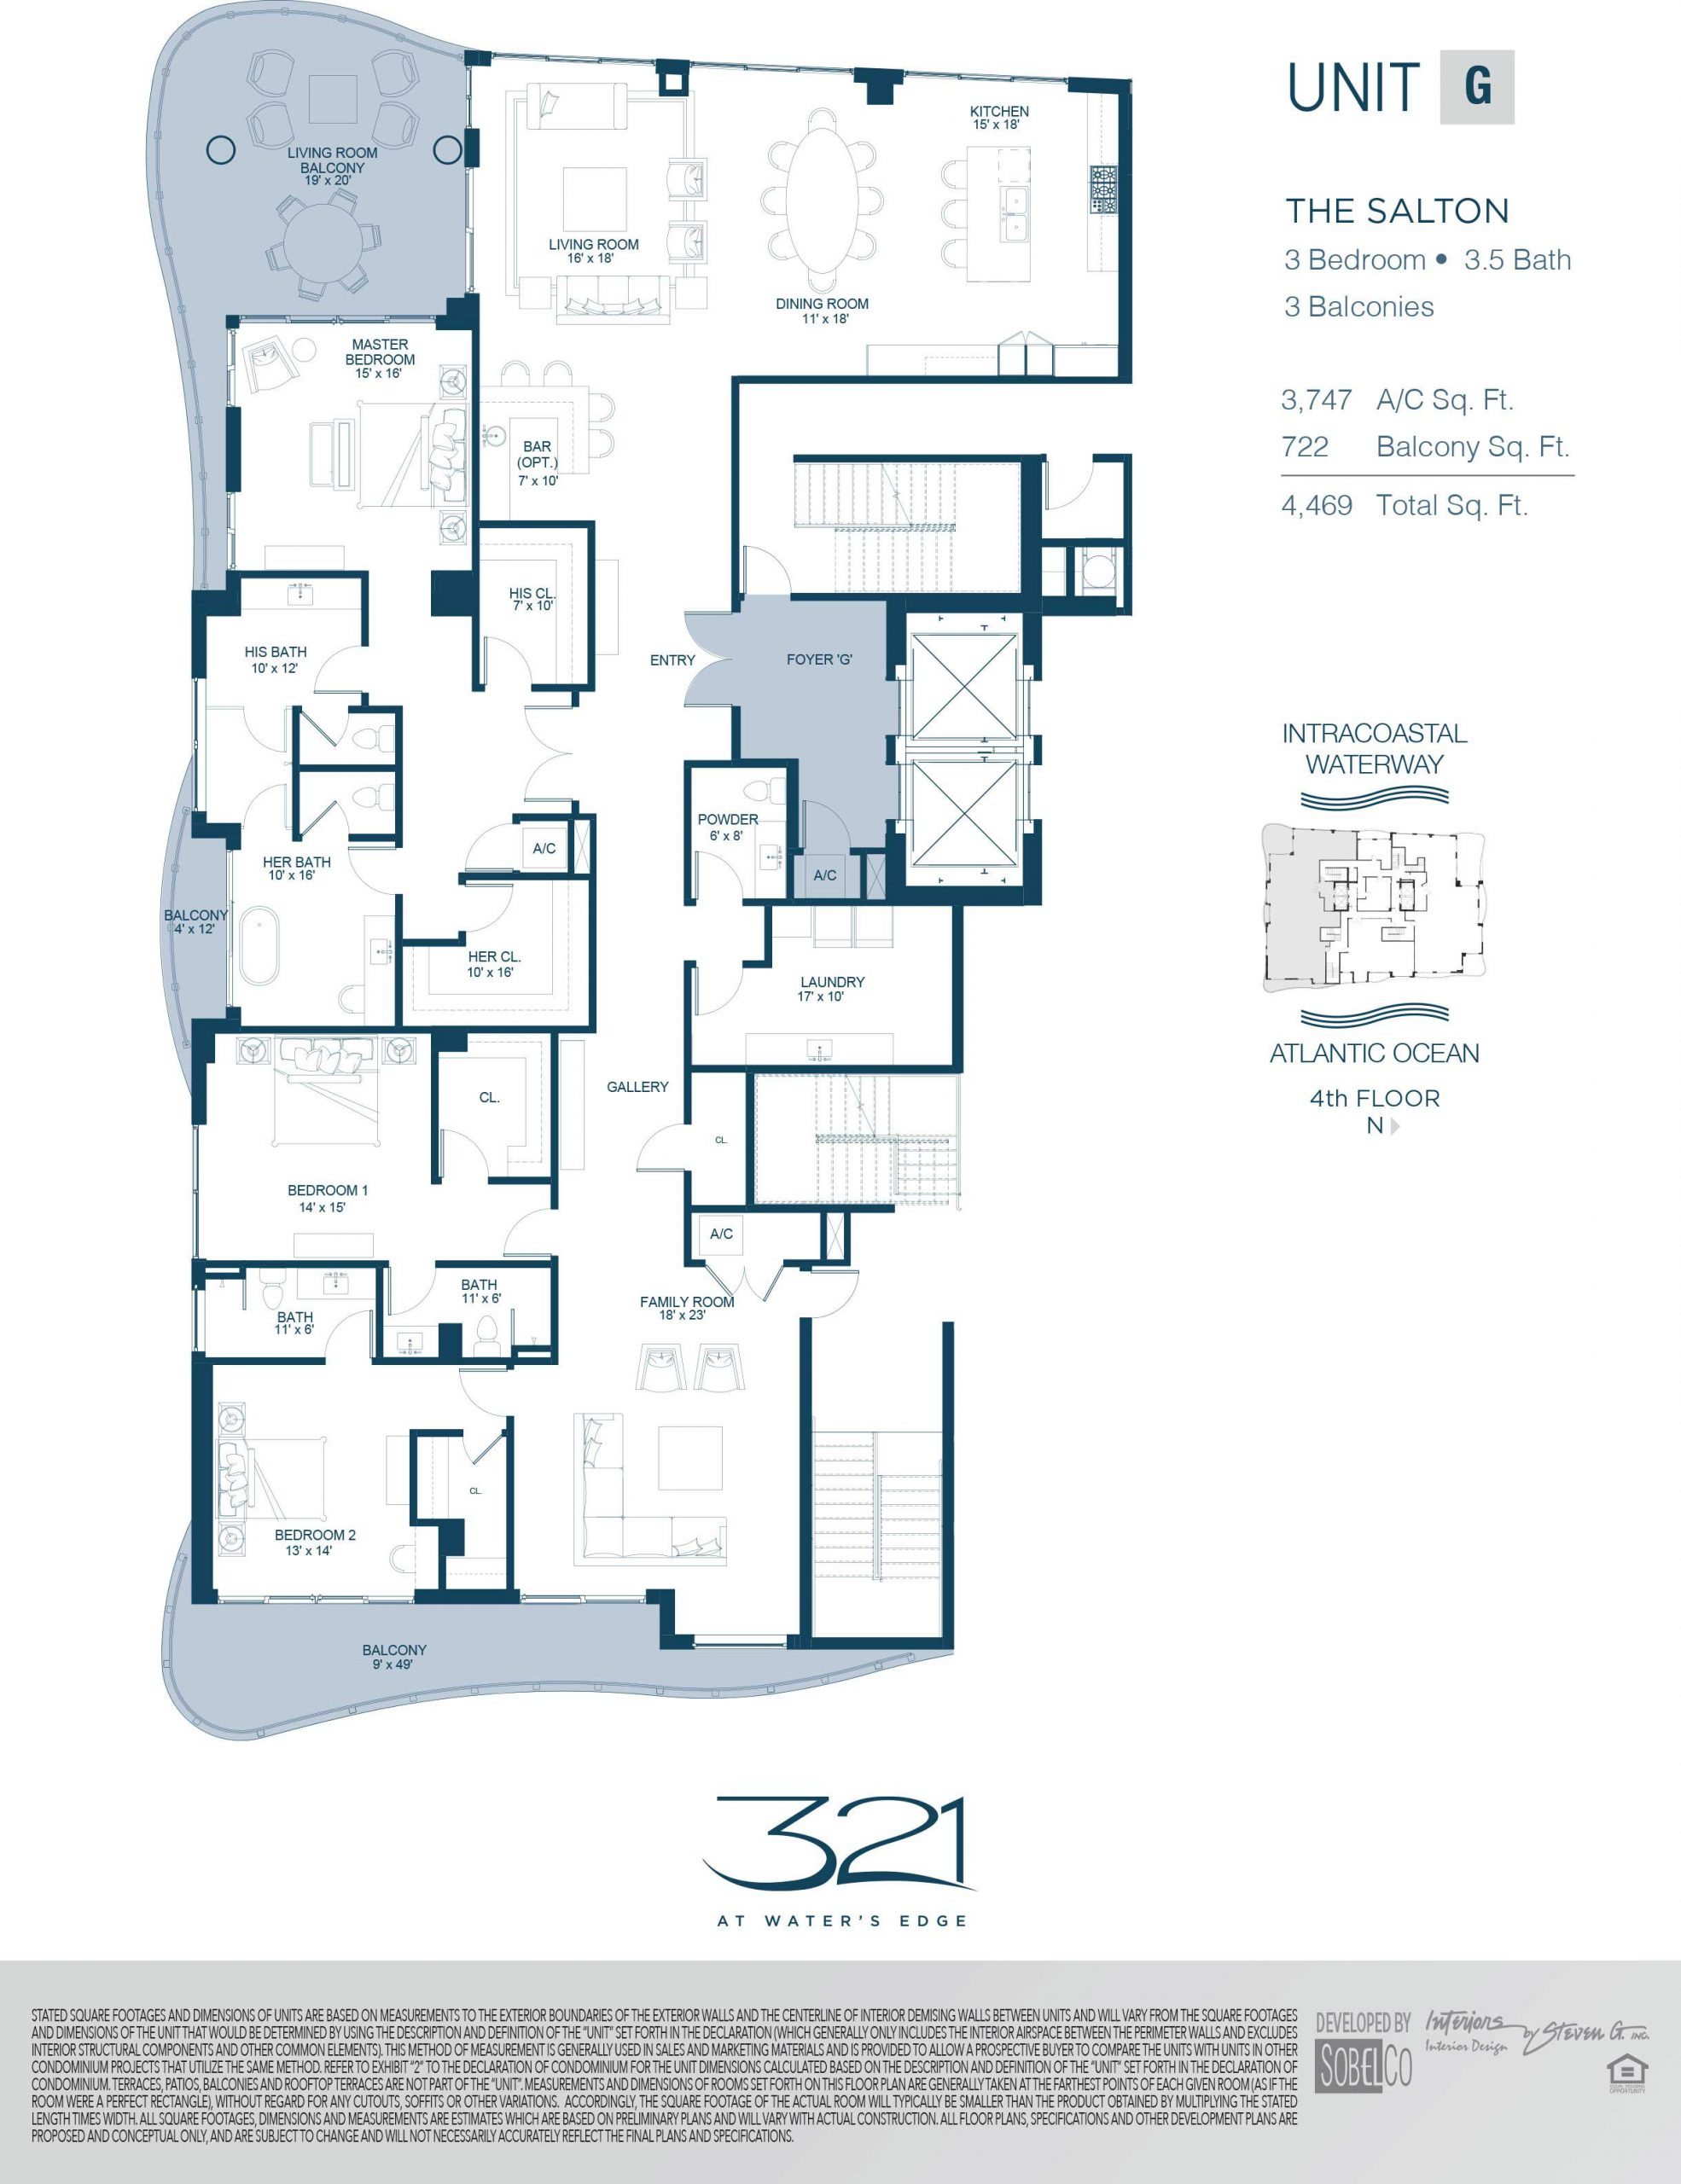 321 At Waters Edge Floor Plans Unit G